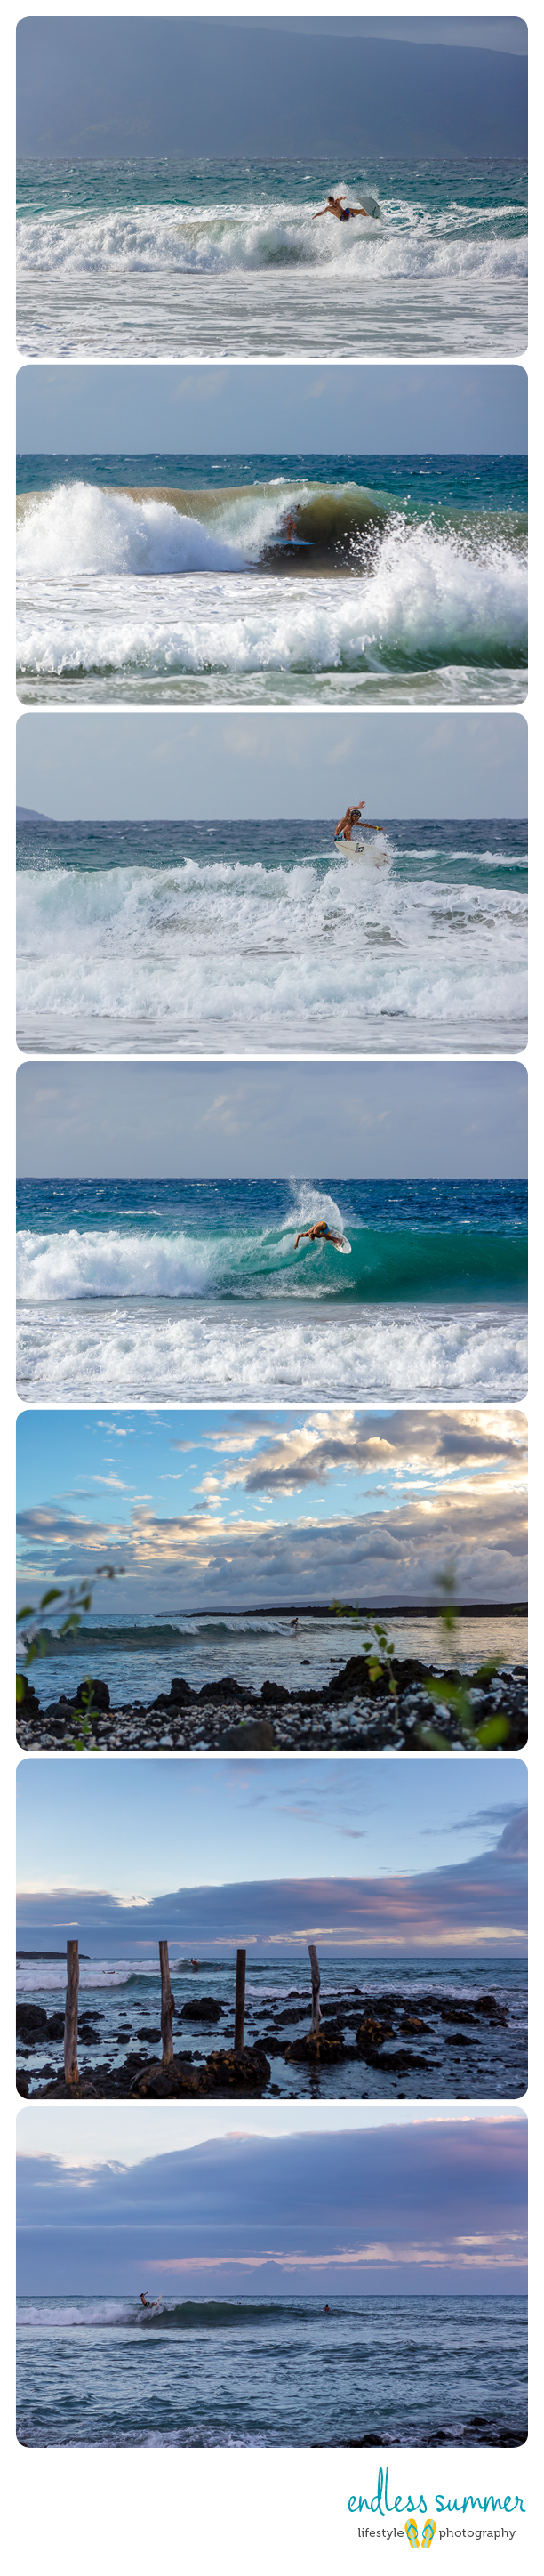 Maui_Surfing_Photography